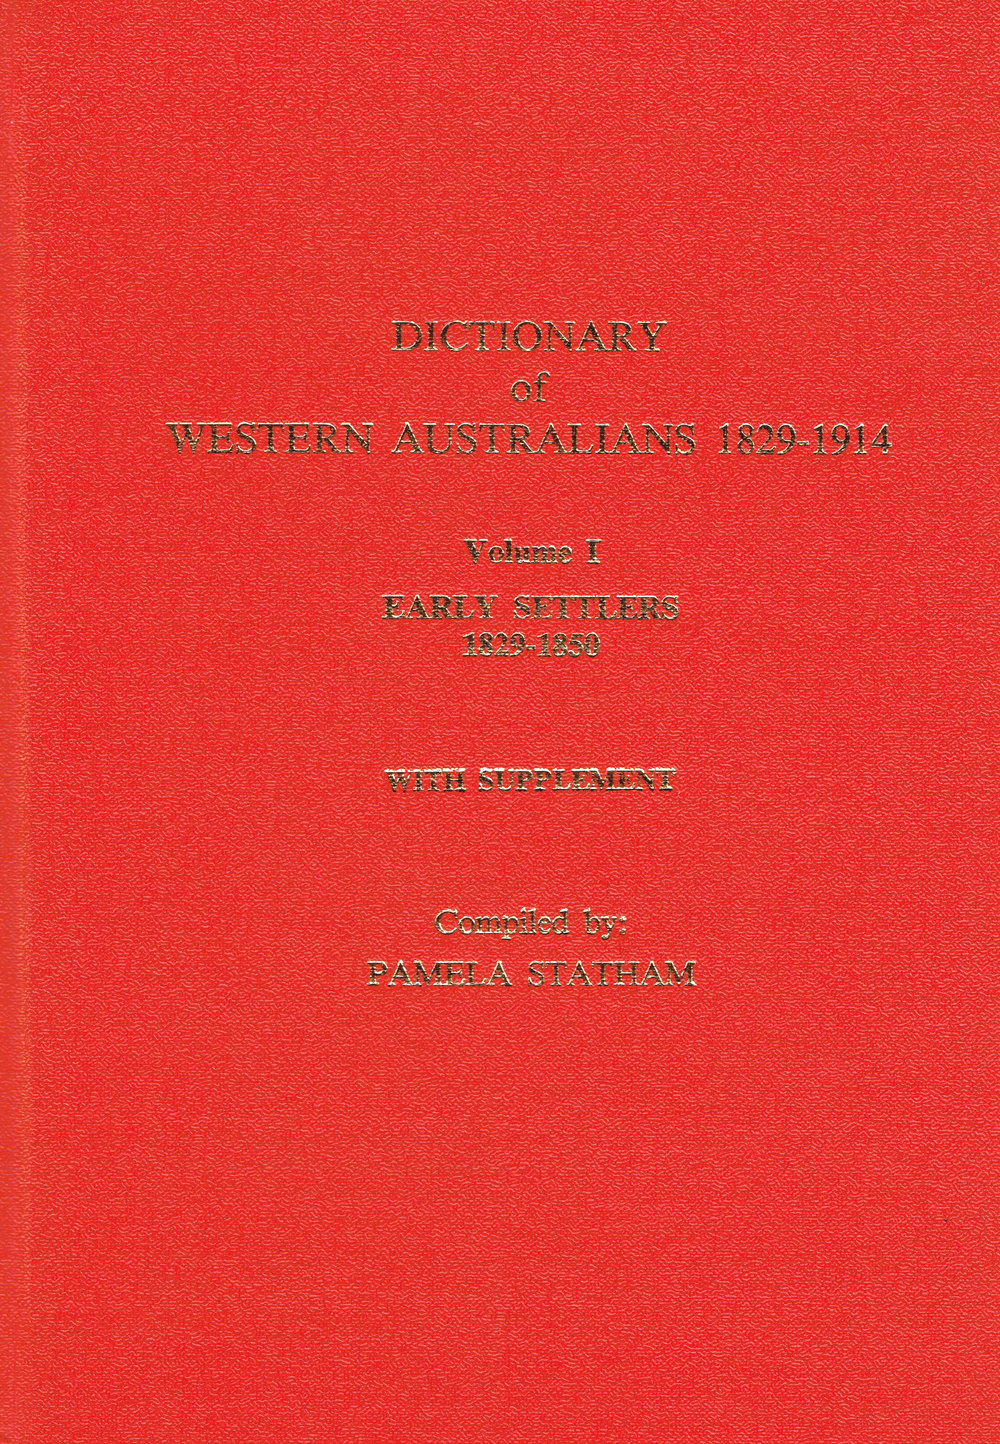 Dictionary of Western Australians 1829-1914 : Vol 1 early settlers 1829-1850 with supplement Compiled by Pamela Statham